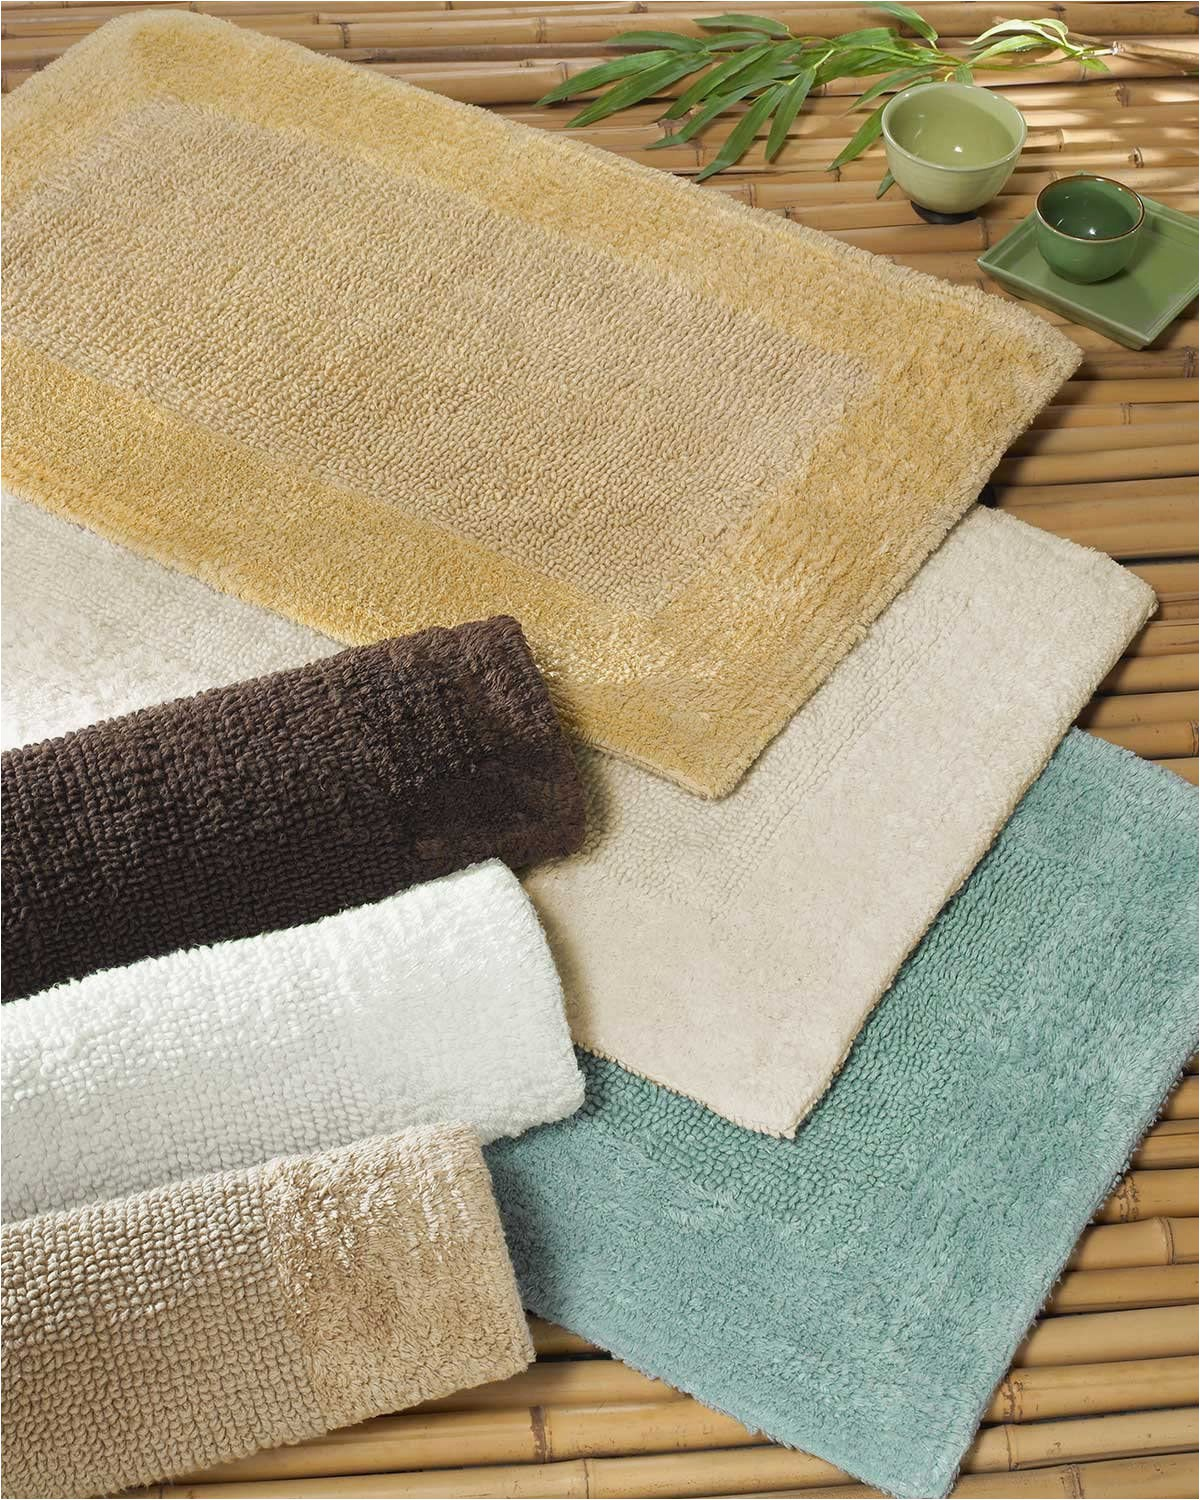 40 X 24 Bath Rug Amazon Luxor Linens Anini Spa Bamboo and Cotton Bath